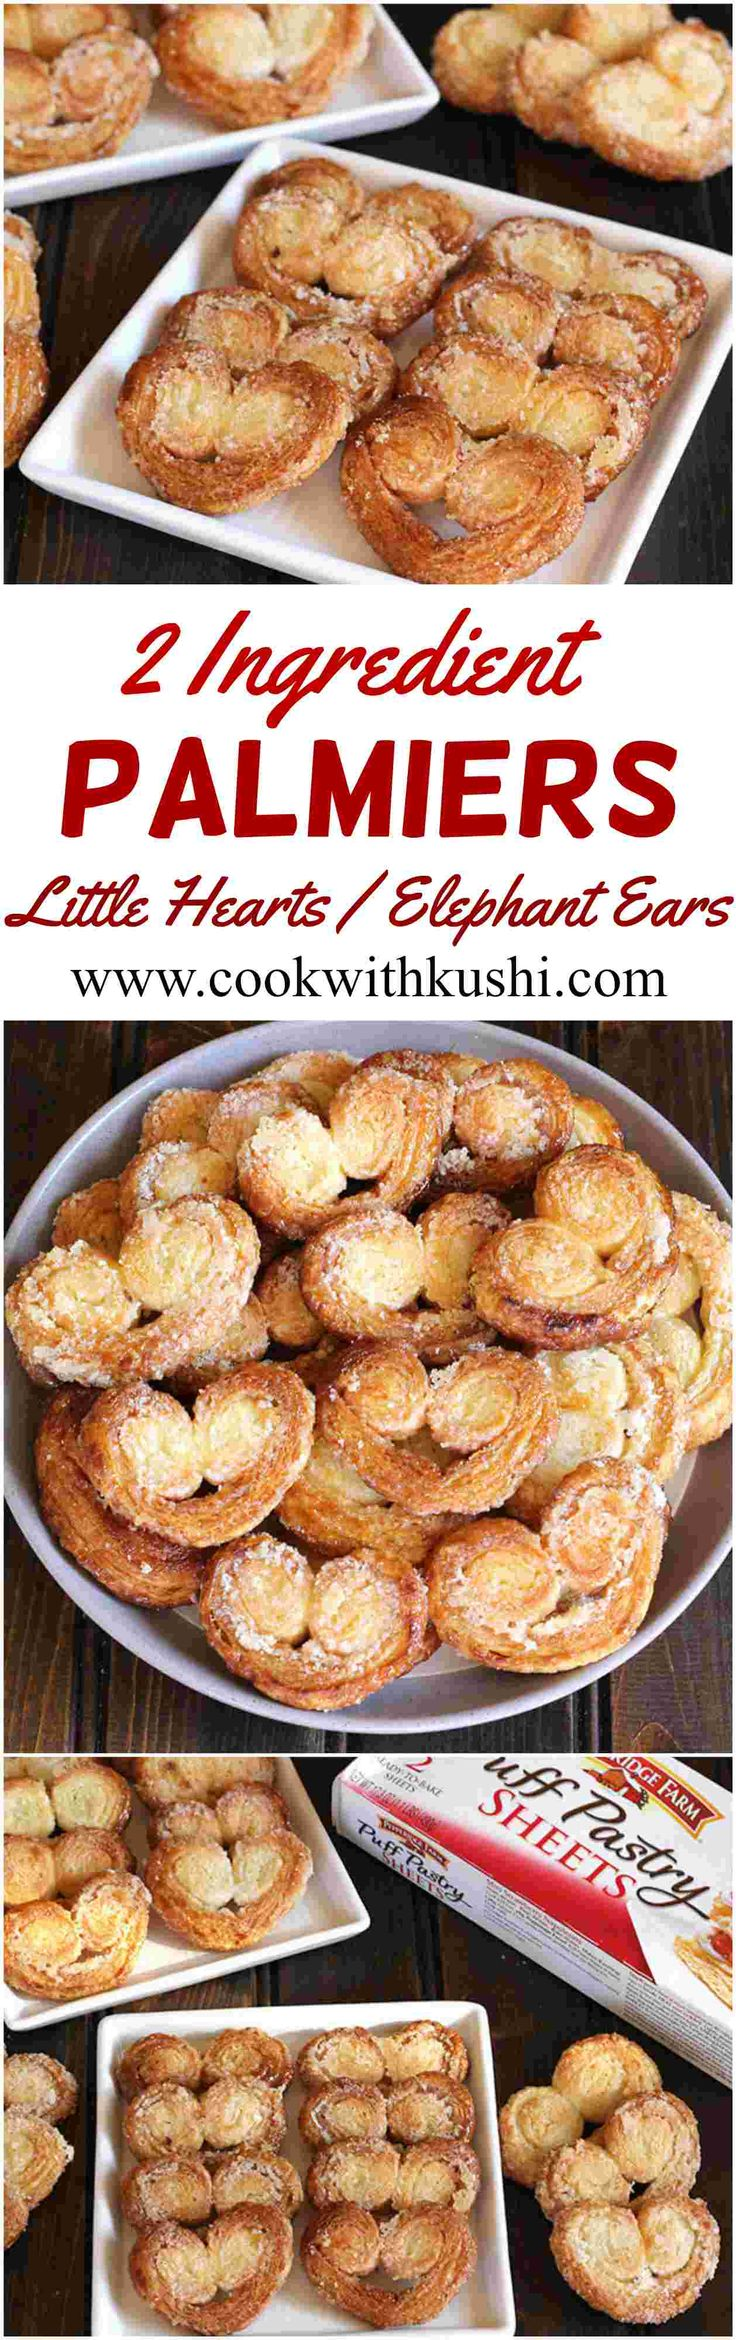 Palmiers or Little Hearts or Elephant ears / Holiday / Thanksgiving / Christmas